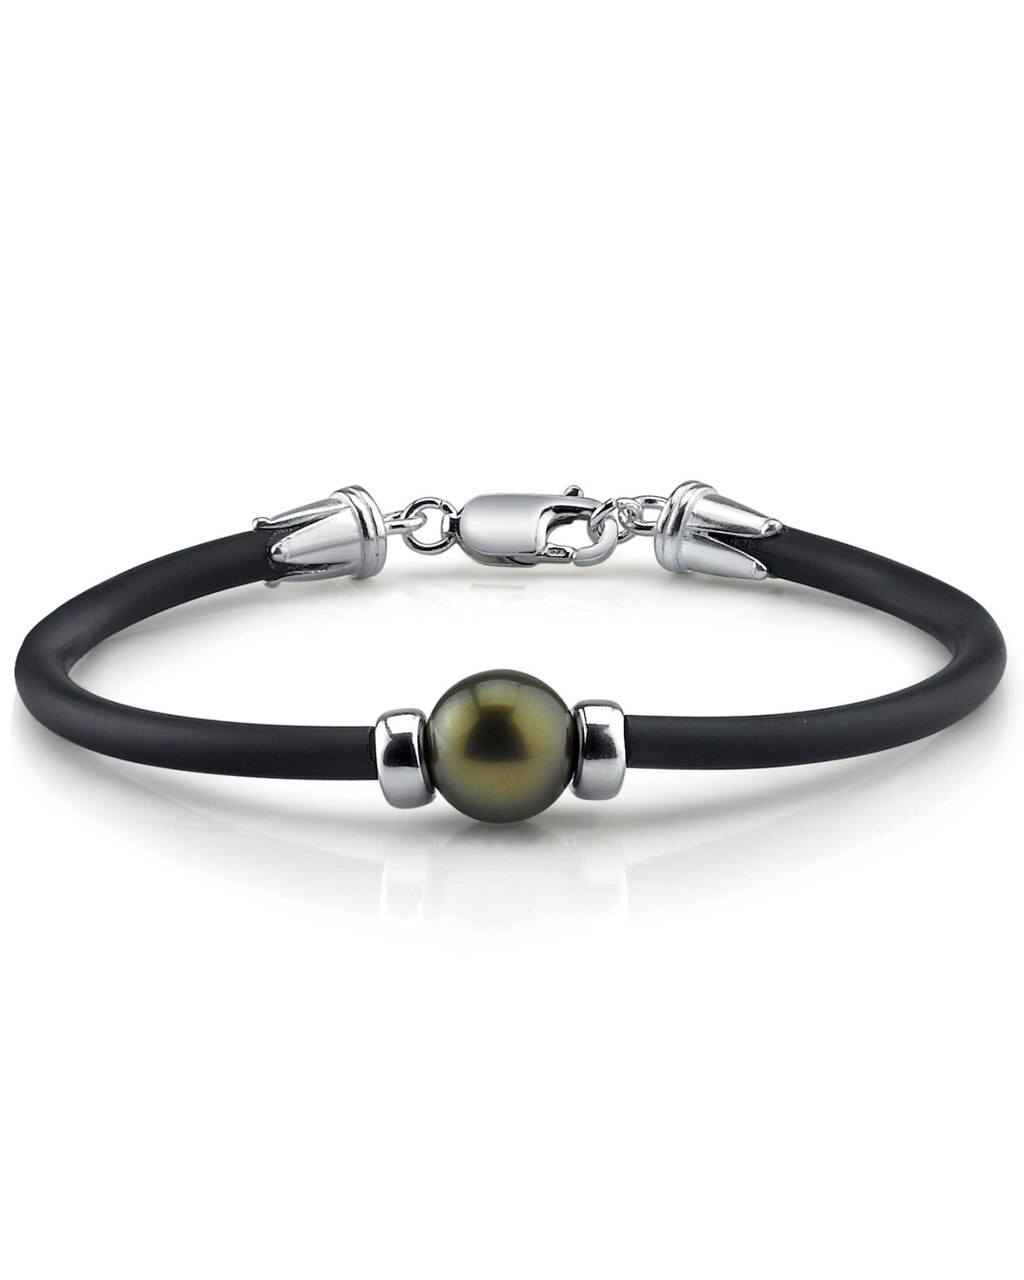 This beautiful bracelet features a round shaped Tahitian South Sea pearl